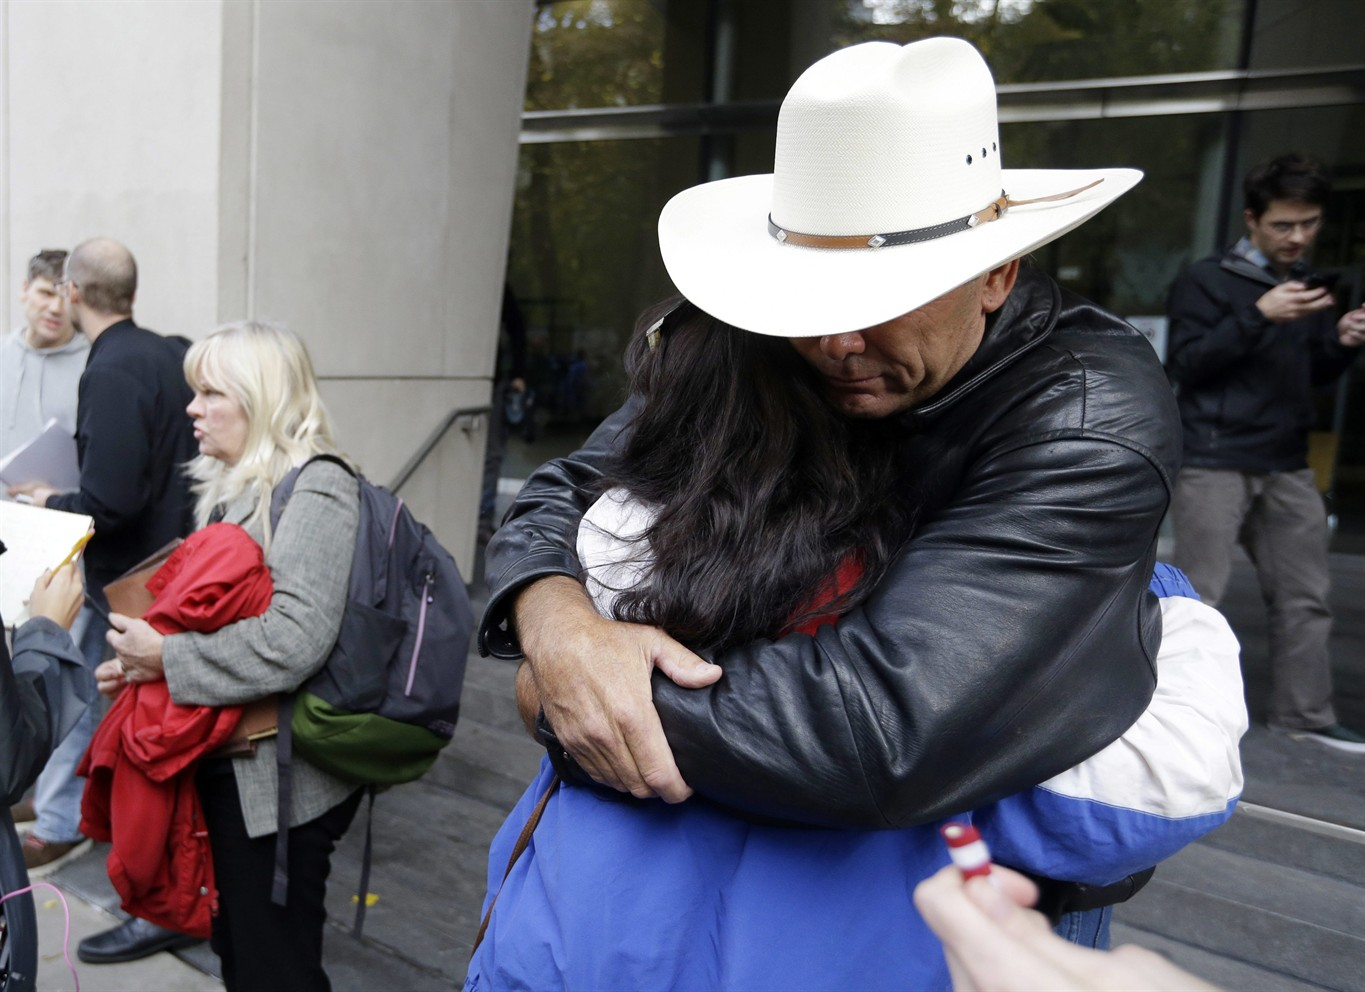 Jury acquits leaders of Oregon standoff of federal charges